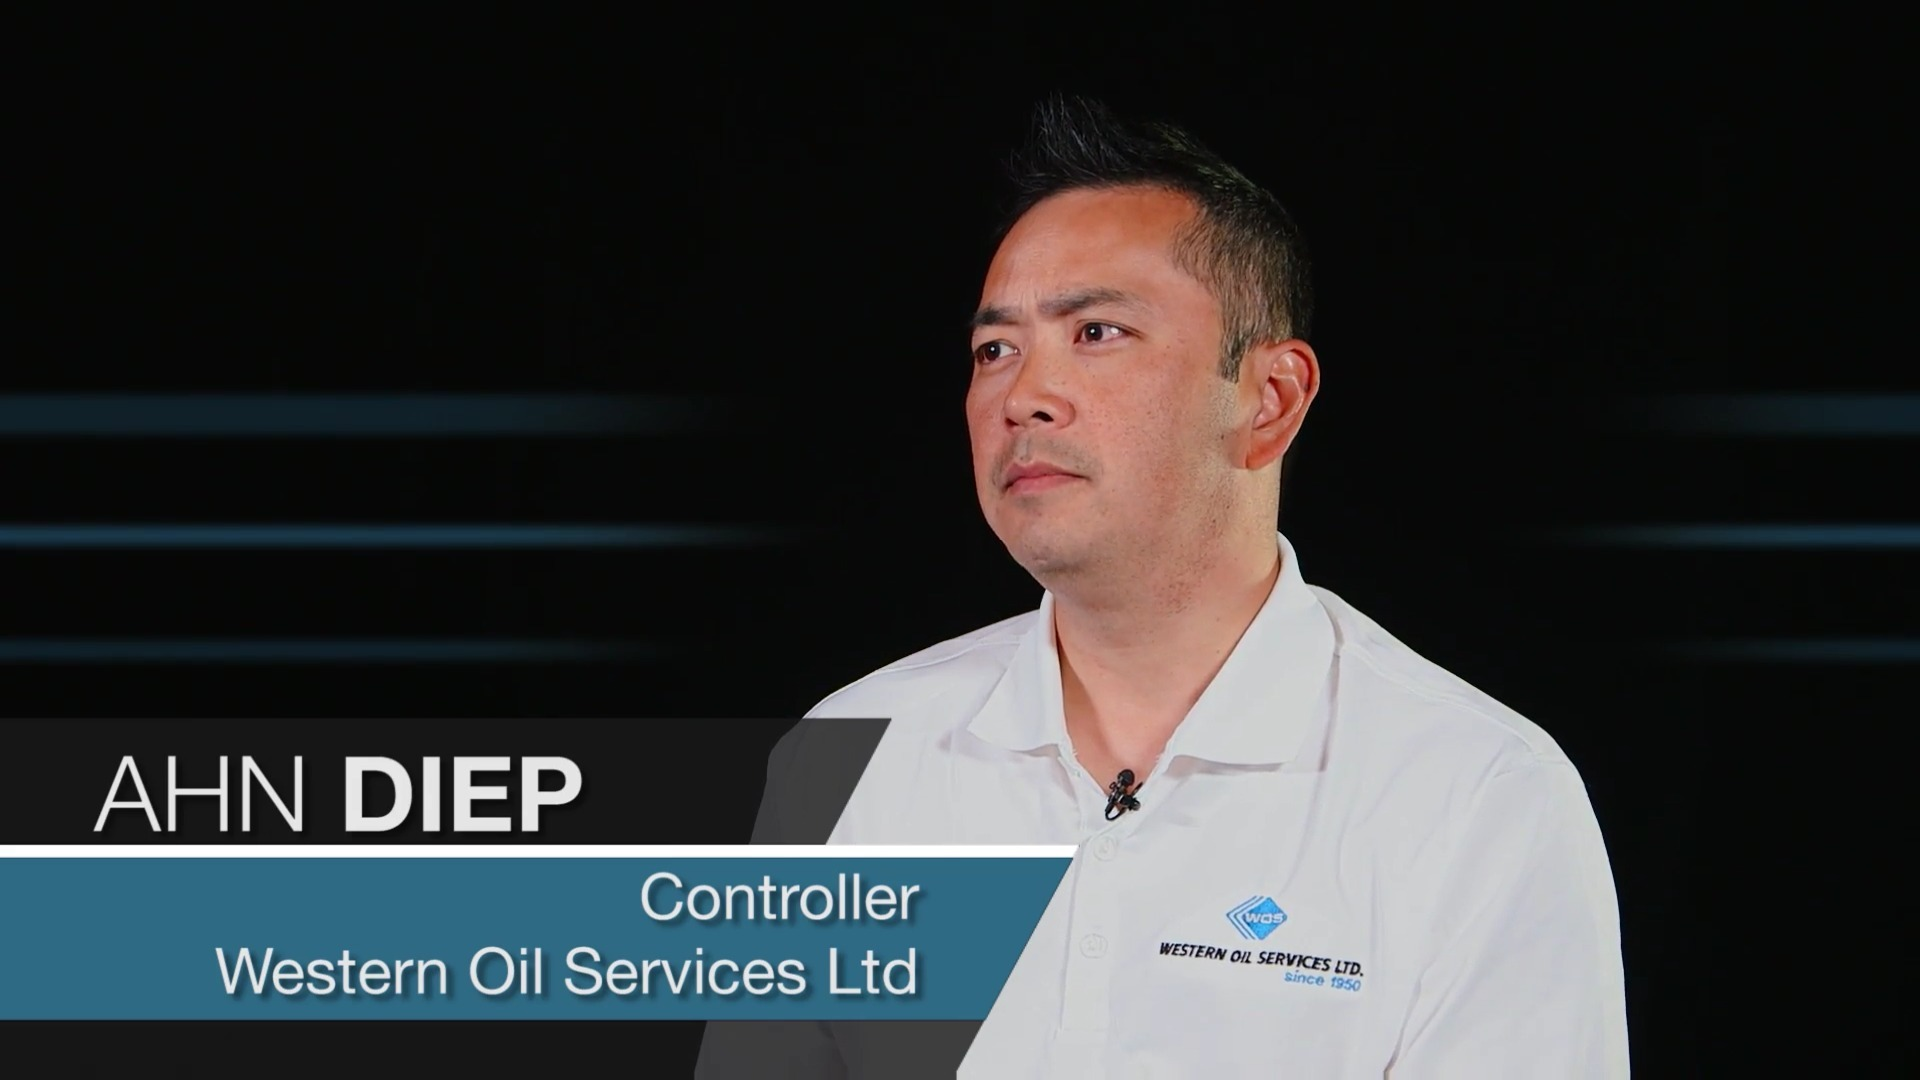 Ahn Diep - Western Oil Services Ltd.